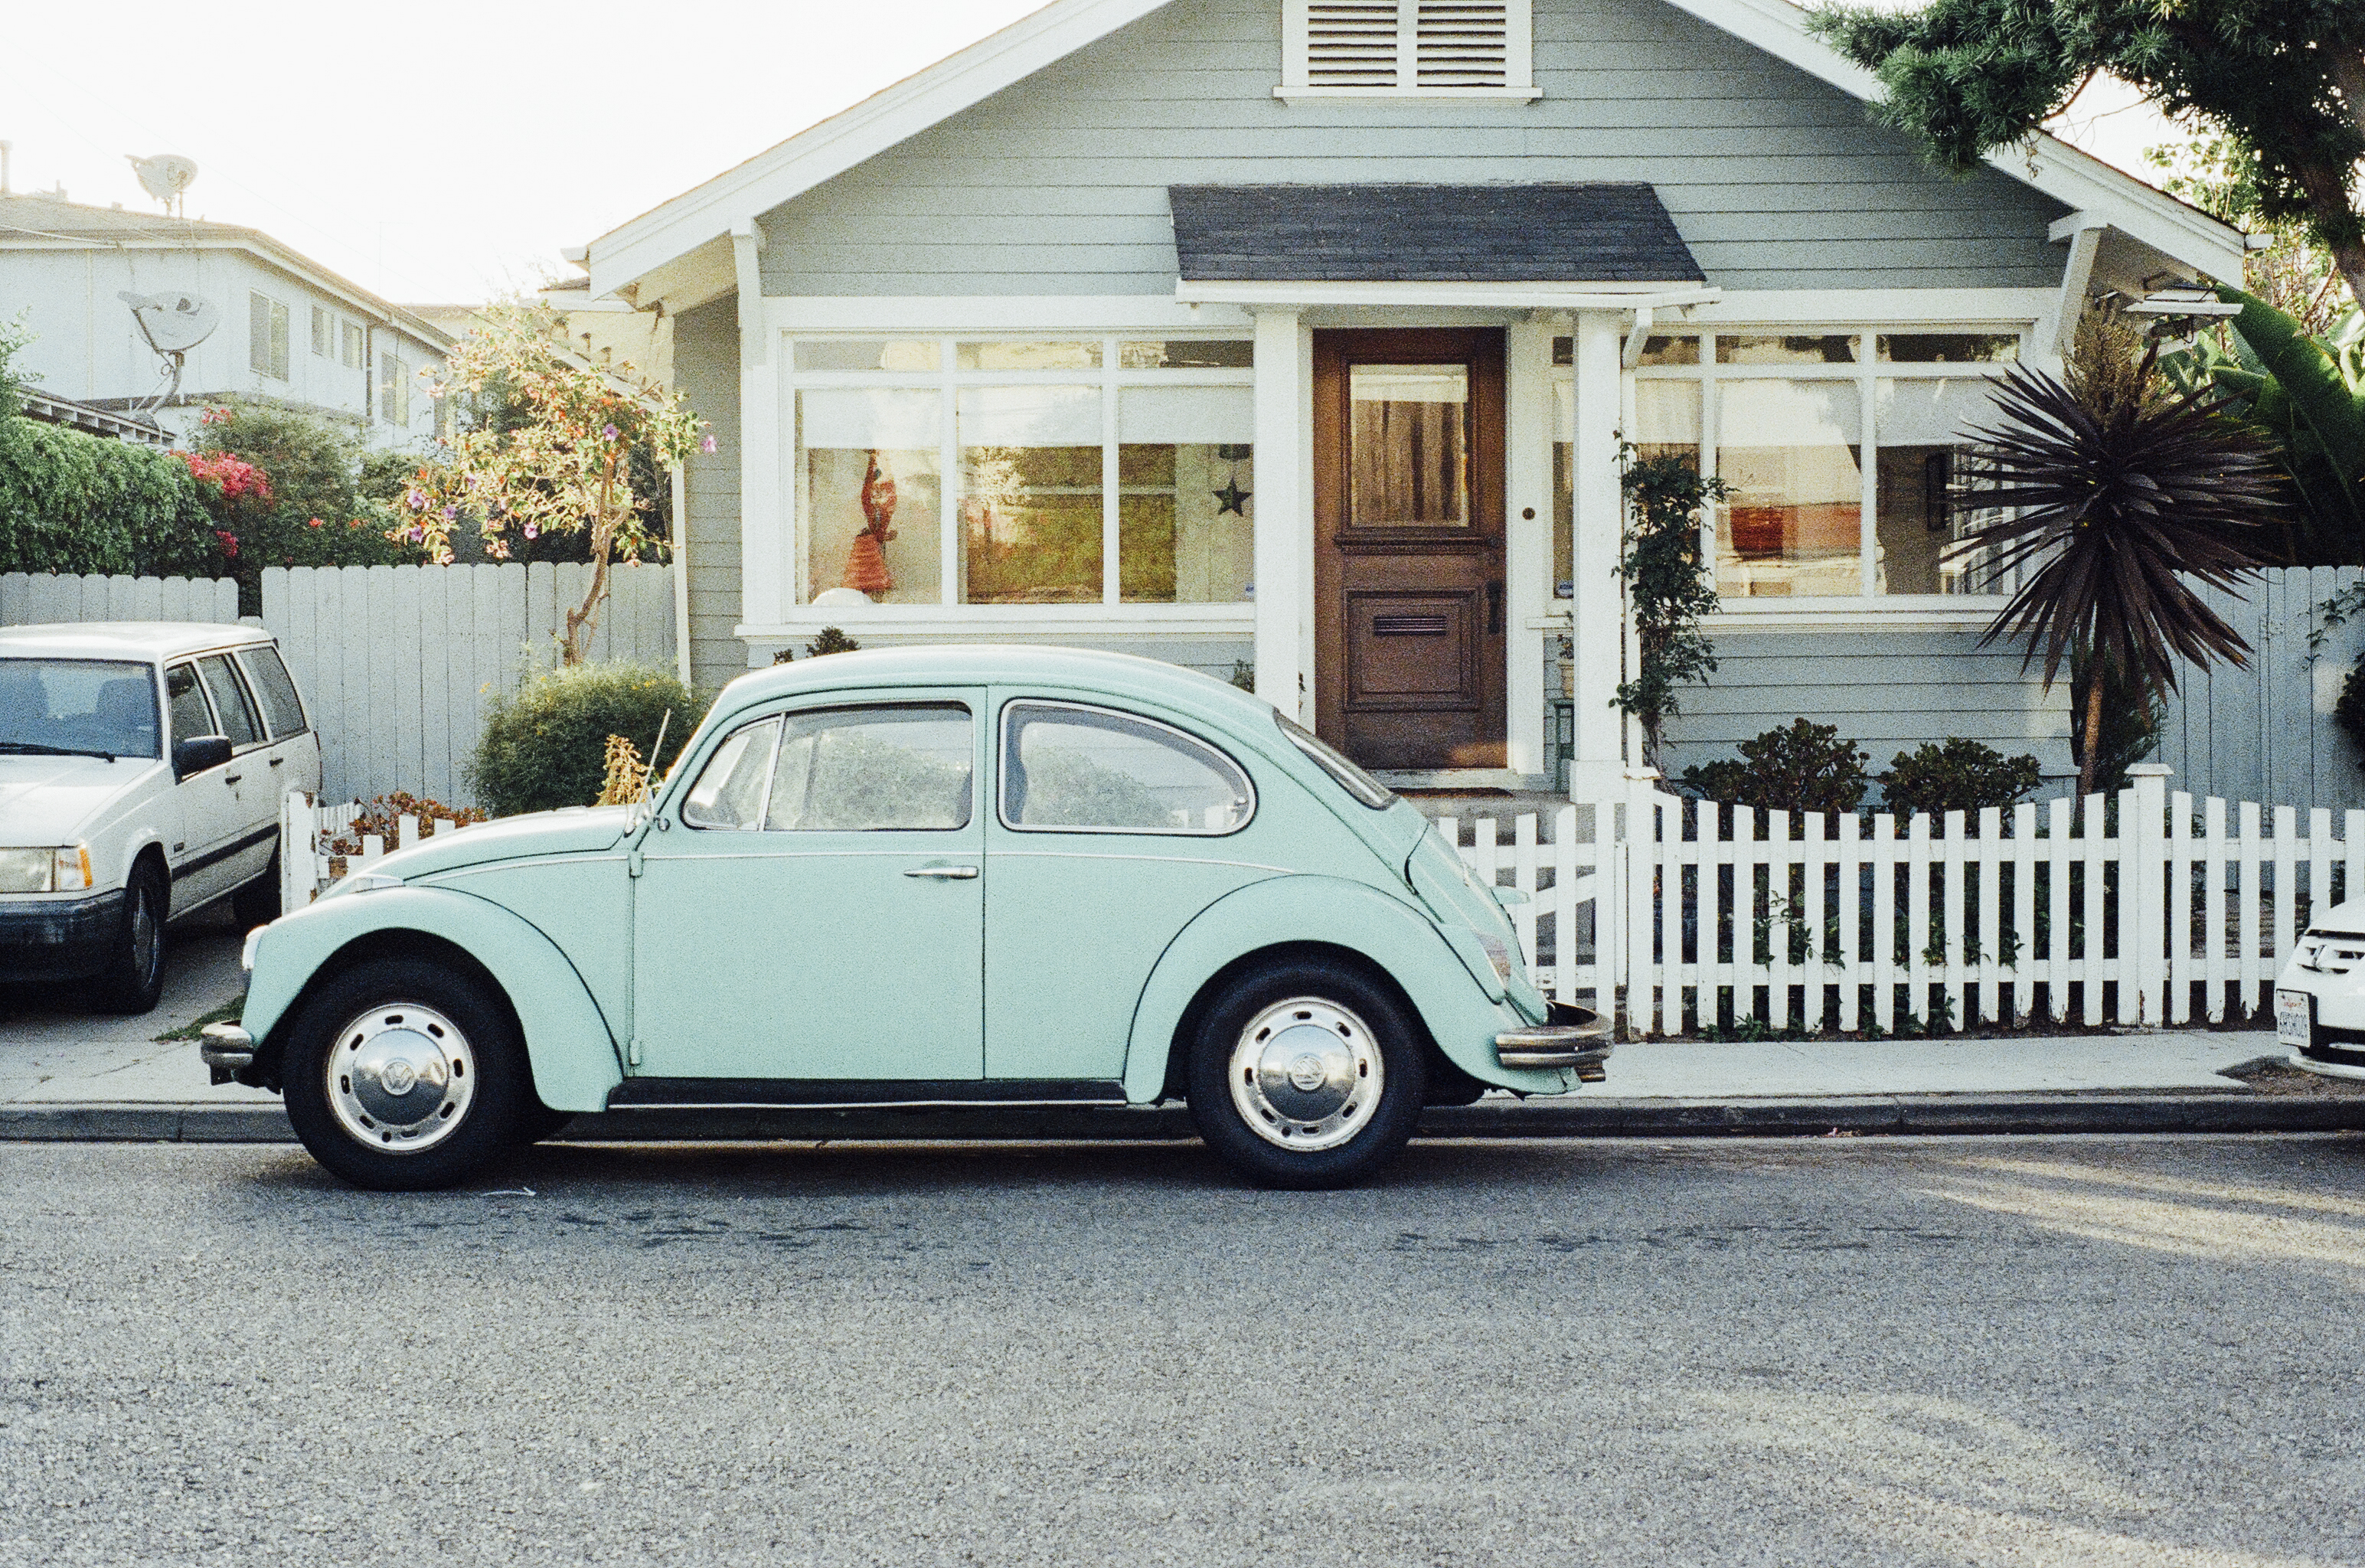 Why Punch Buggy Is The Absolute Worst Car Game Ever